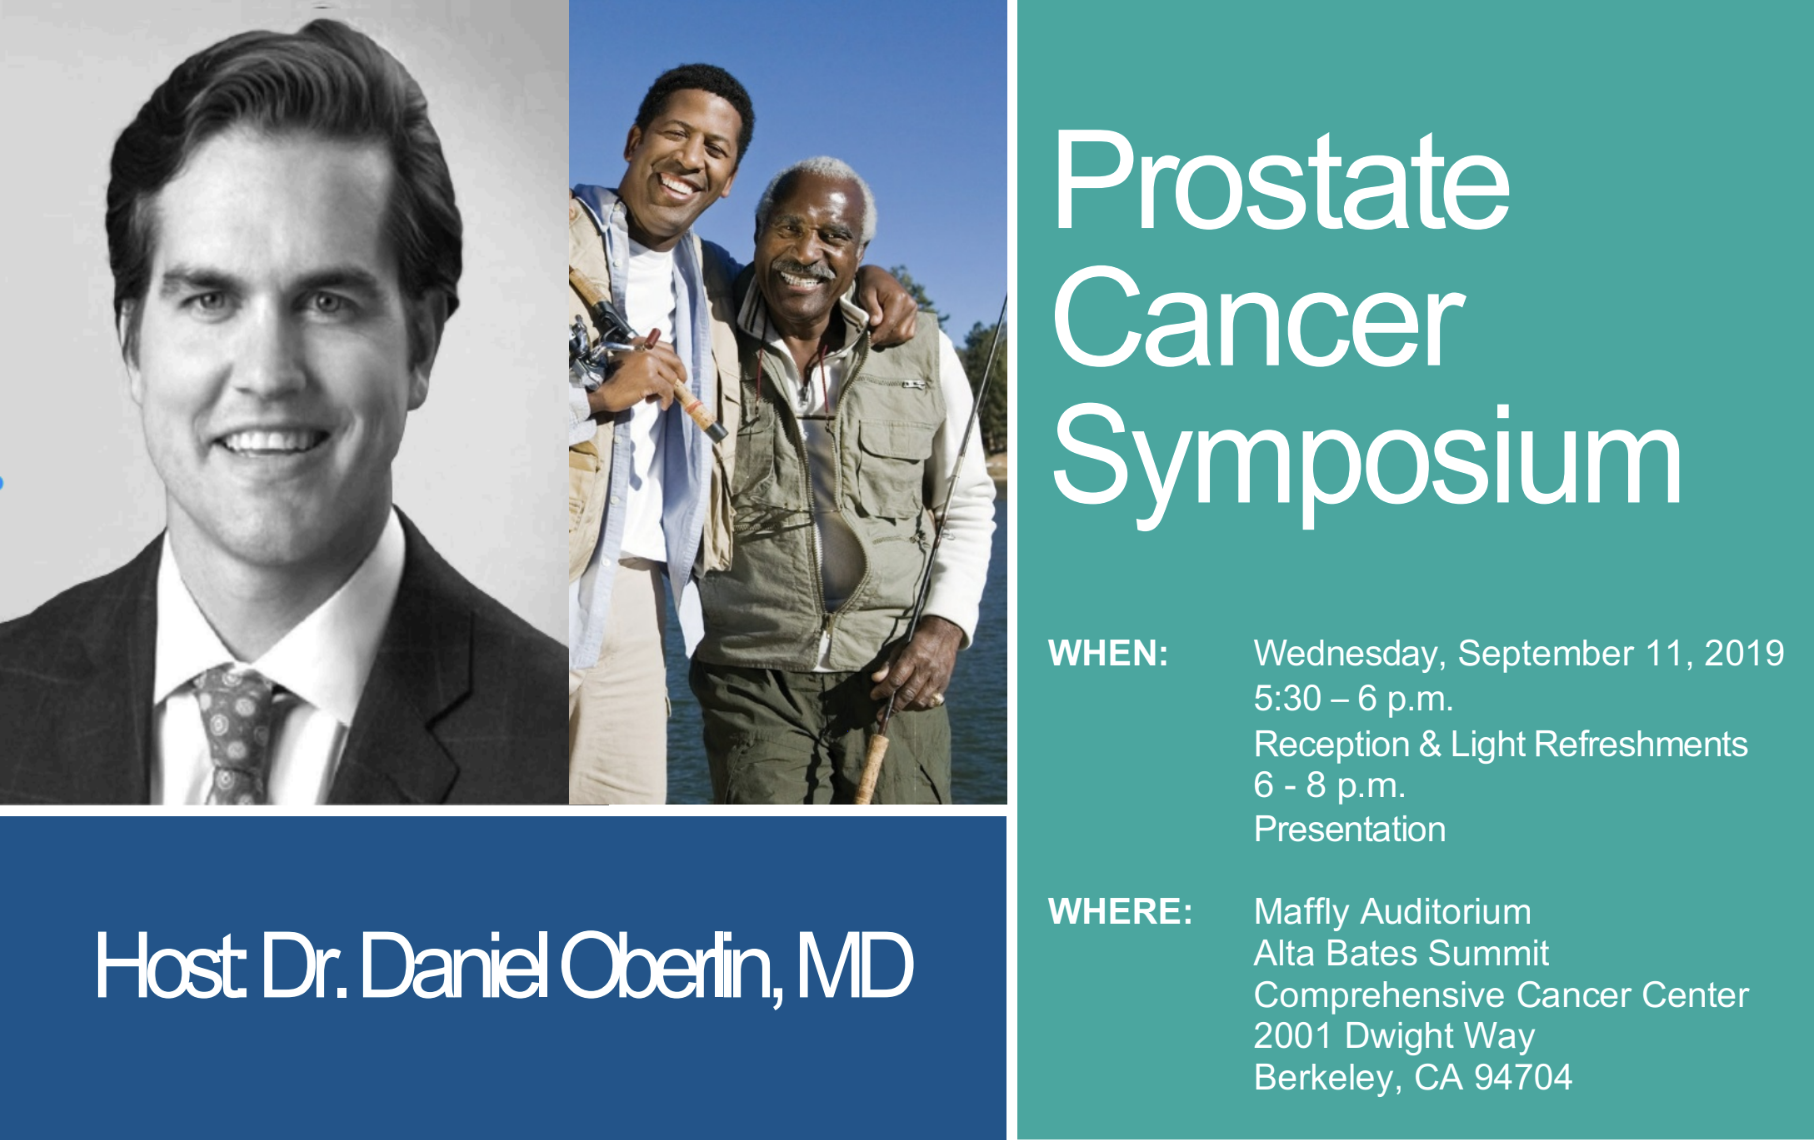 Prostate Cancer Symposium Flyer